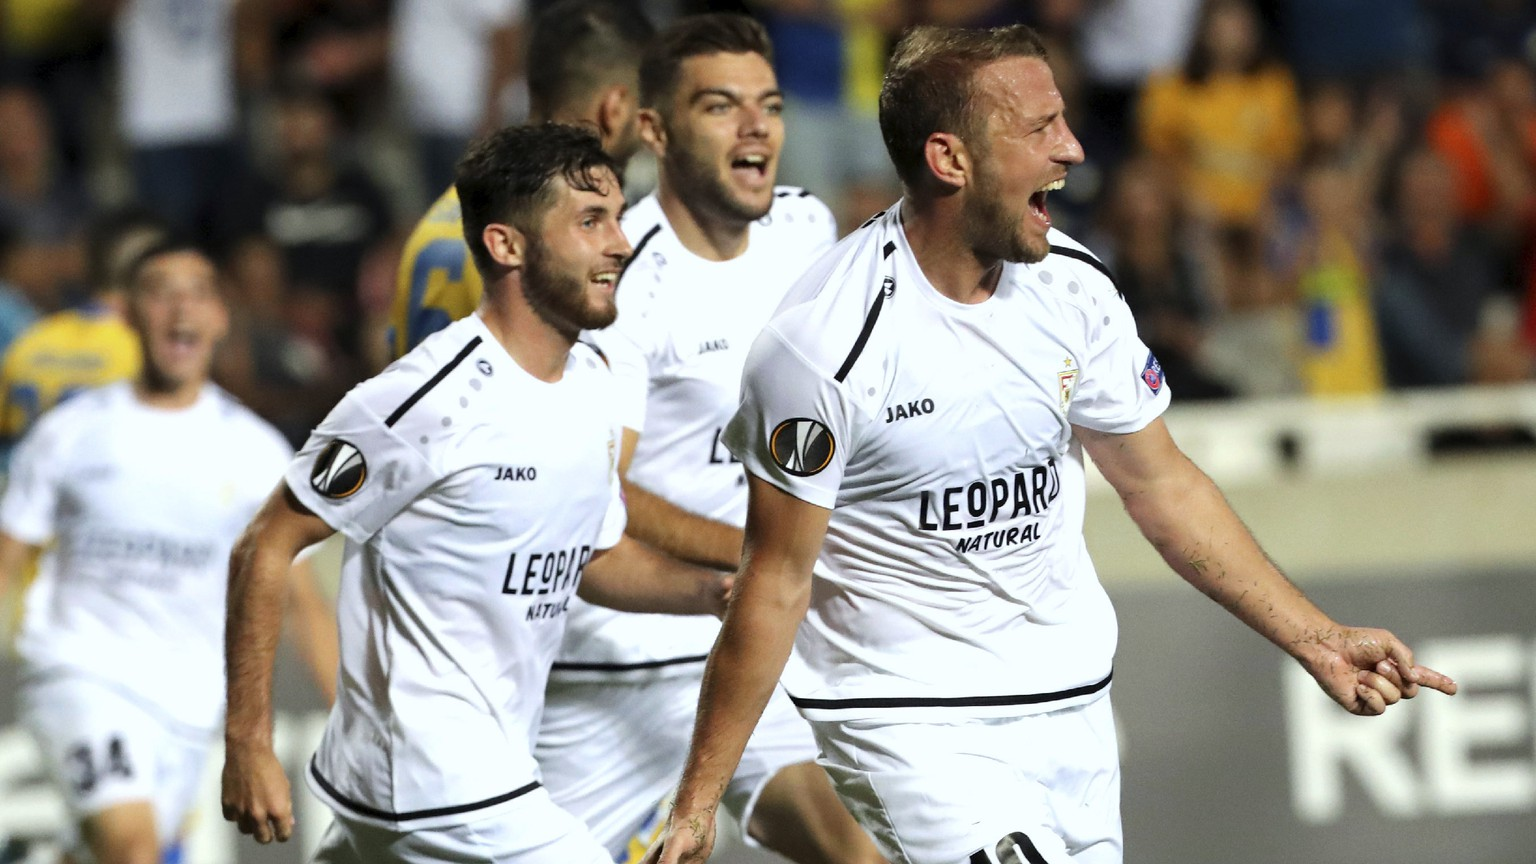 Dudelange's Dominik Stolz, right, celebrates with his teammates his goal against APOEL during the Europa League group A soccer match between APOEL Nicosia and Dudelange at GSP stadium in Nicosia, Cyprus, Thursday, Sept. 19, 2019. (AP Photo/Petros Karadjias)